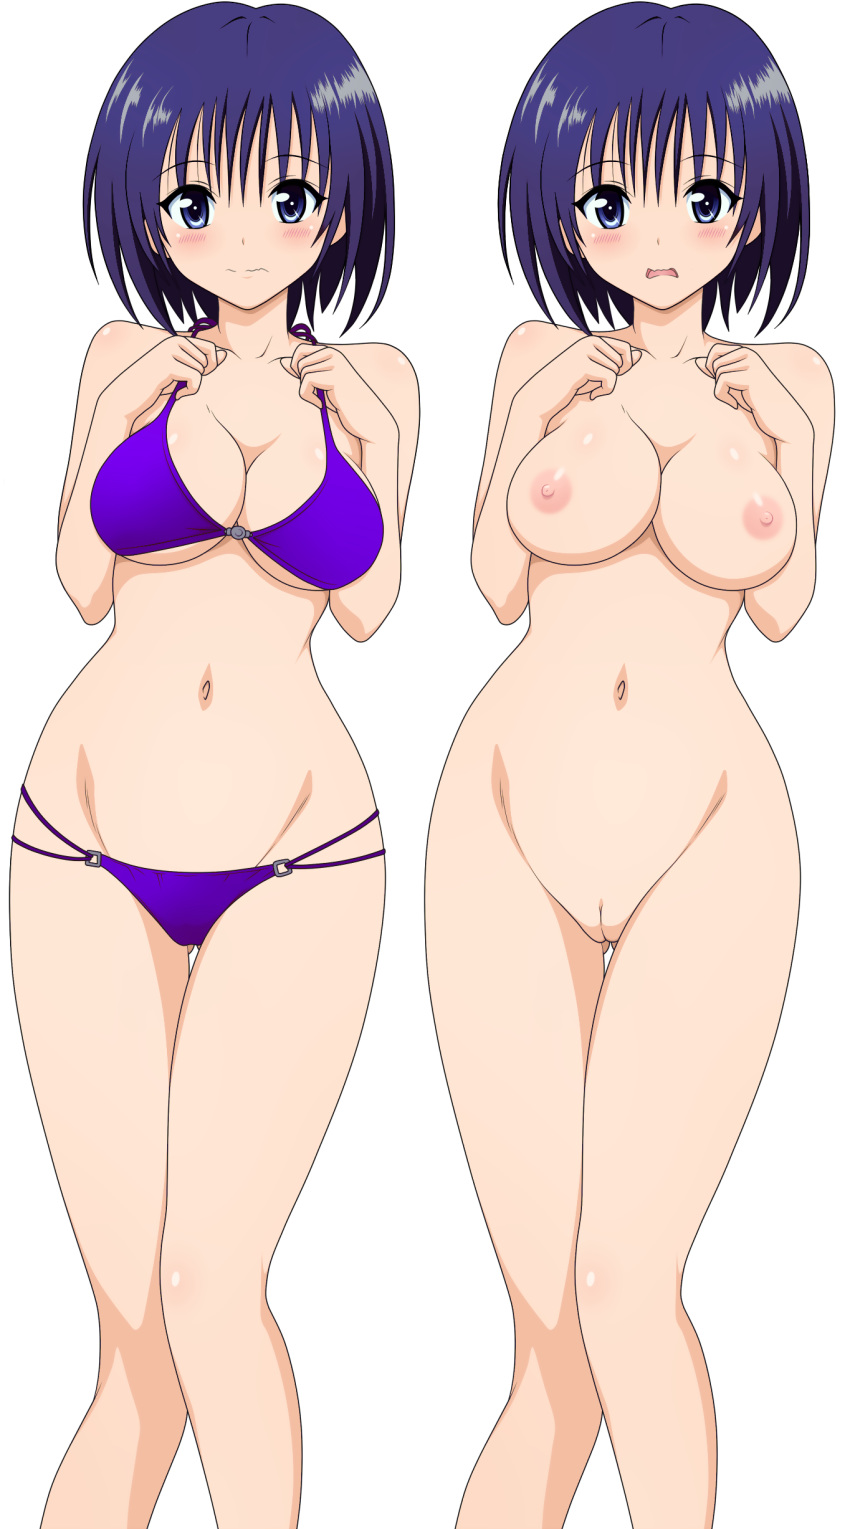 lala to love ru naked Saber fate stay night hentai